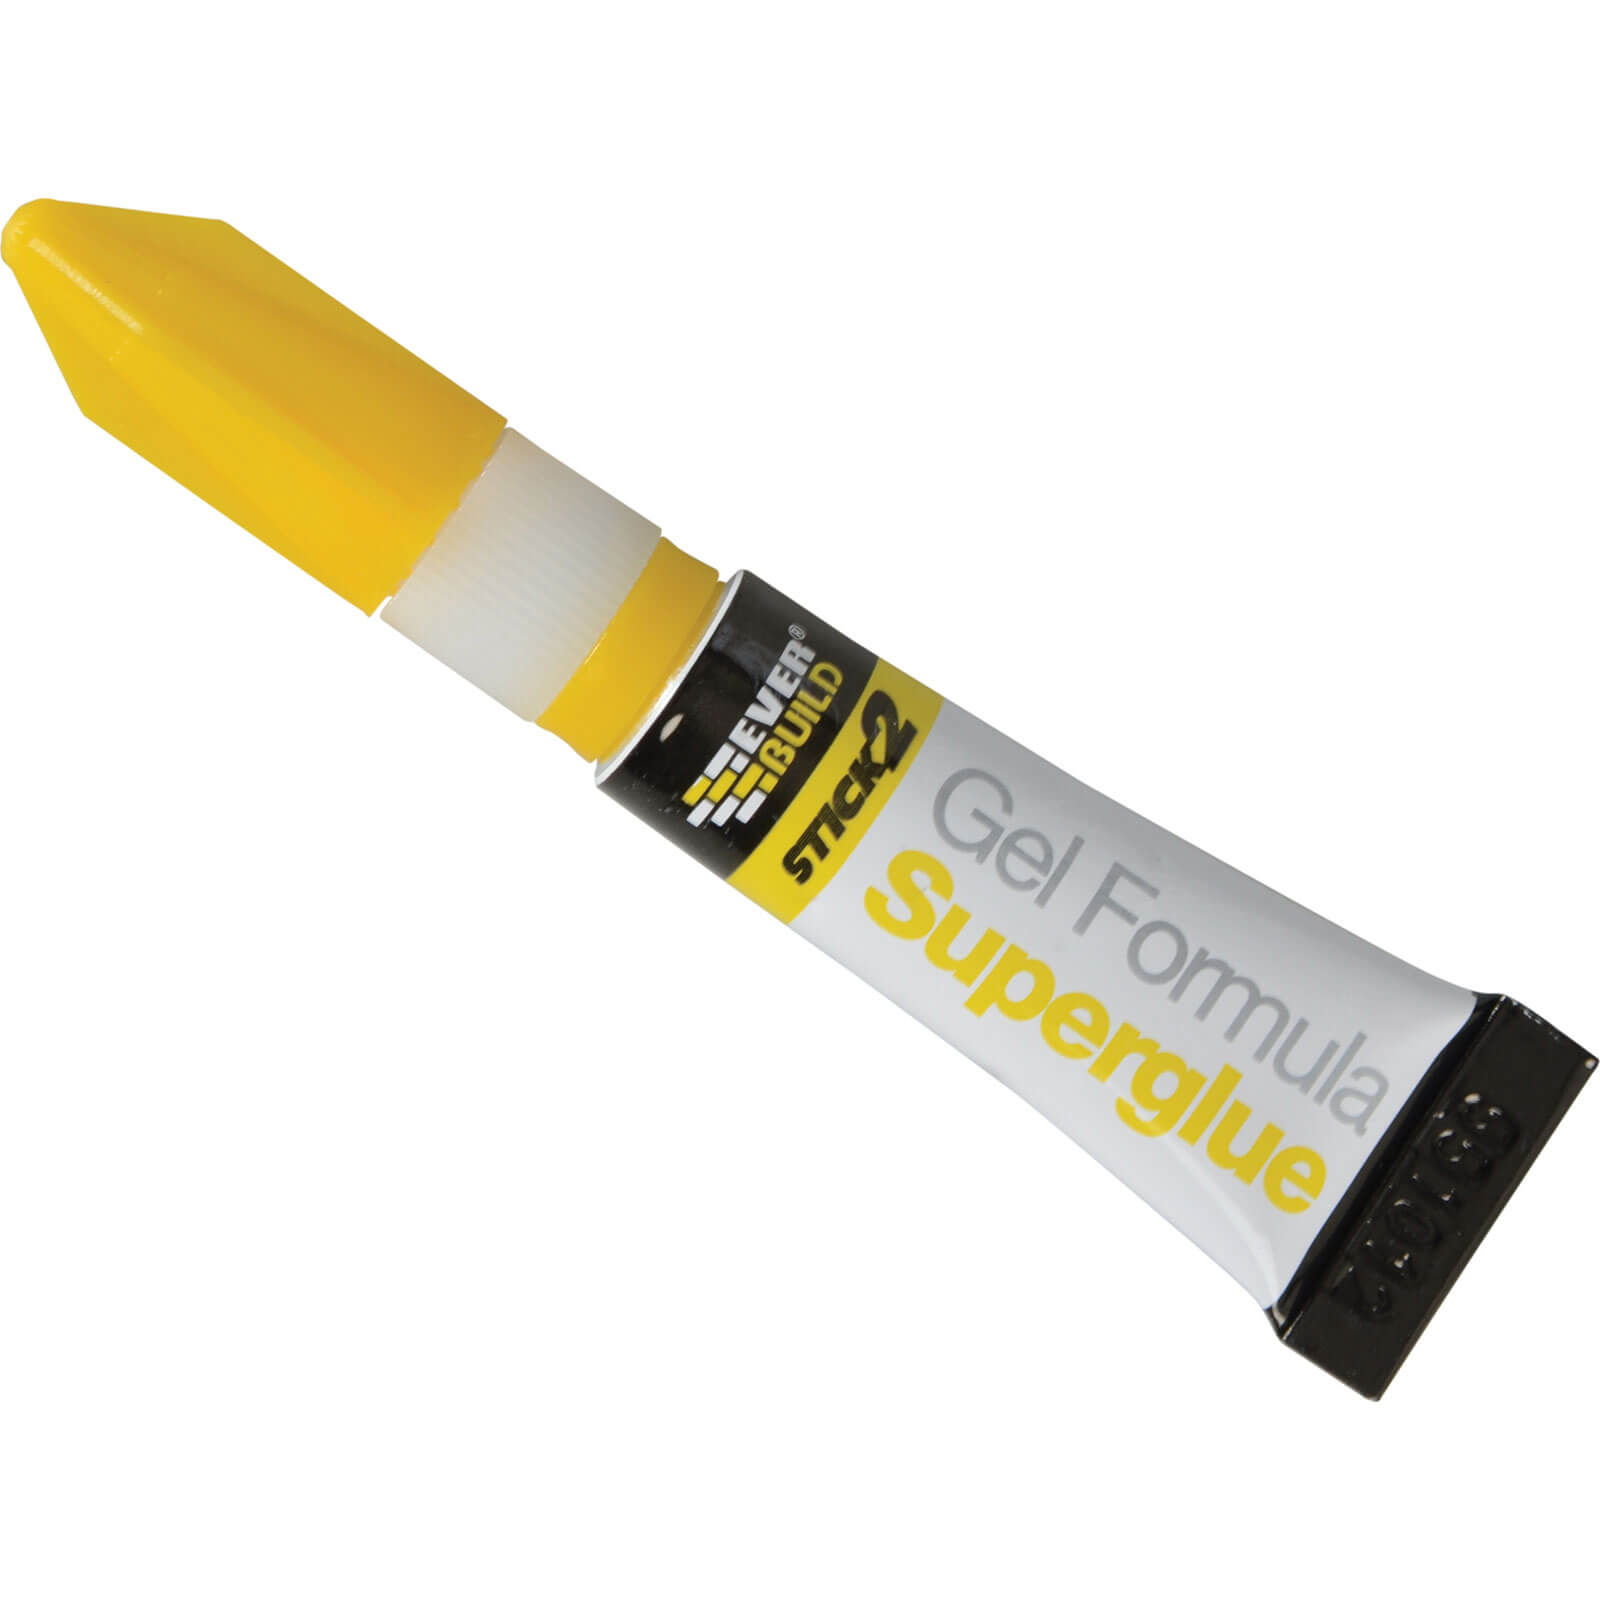 Tooled Up/Sealants & Adhesives/Adhesives/Everbuild Stick 2 Superglue Gel 3g